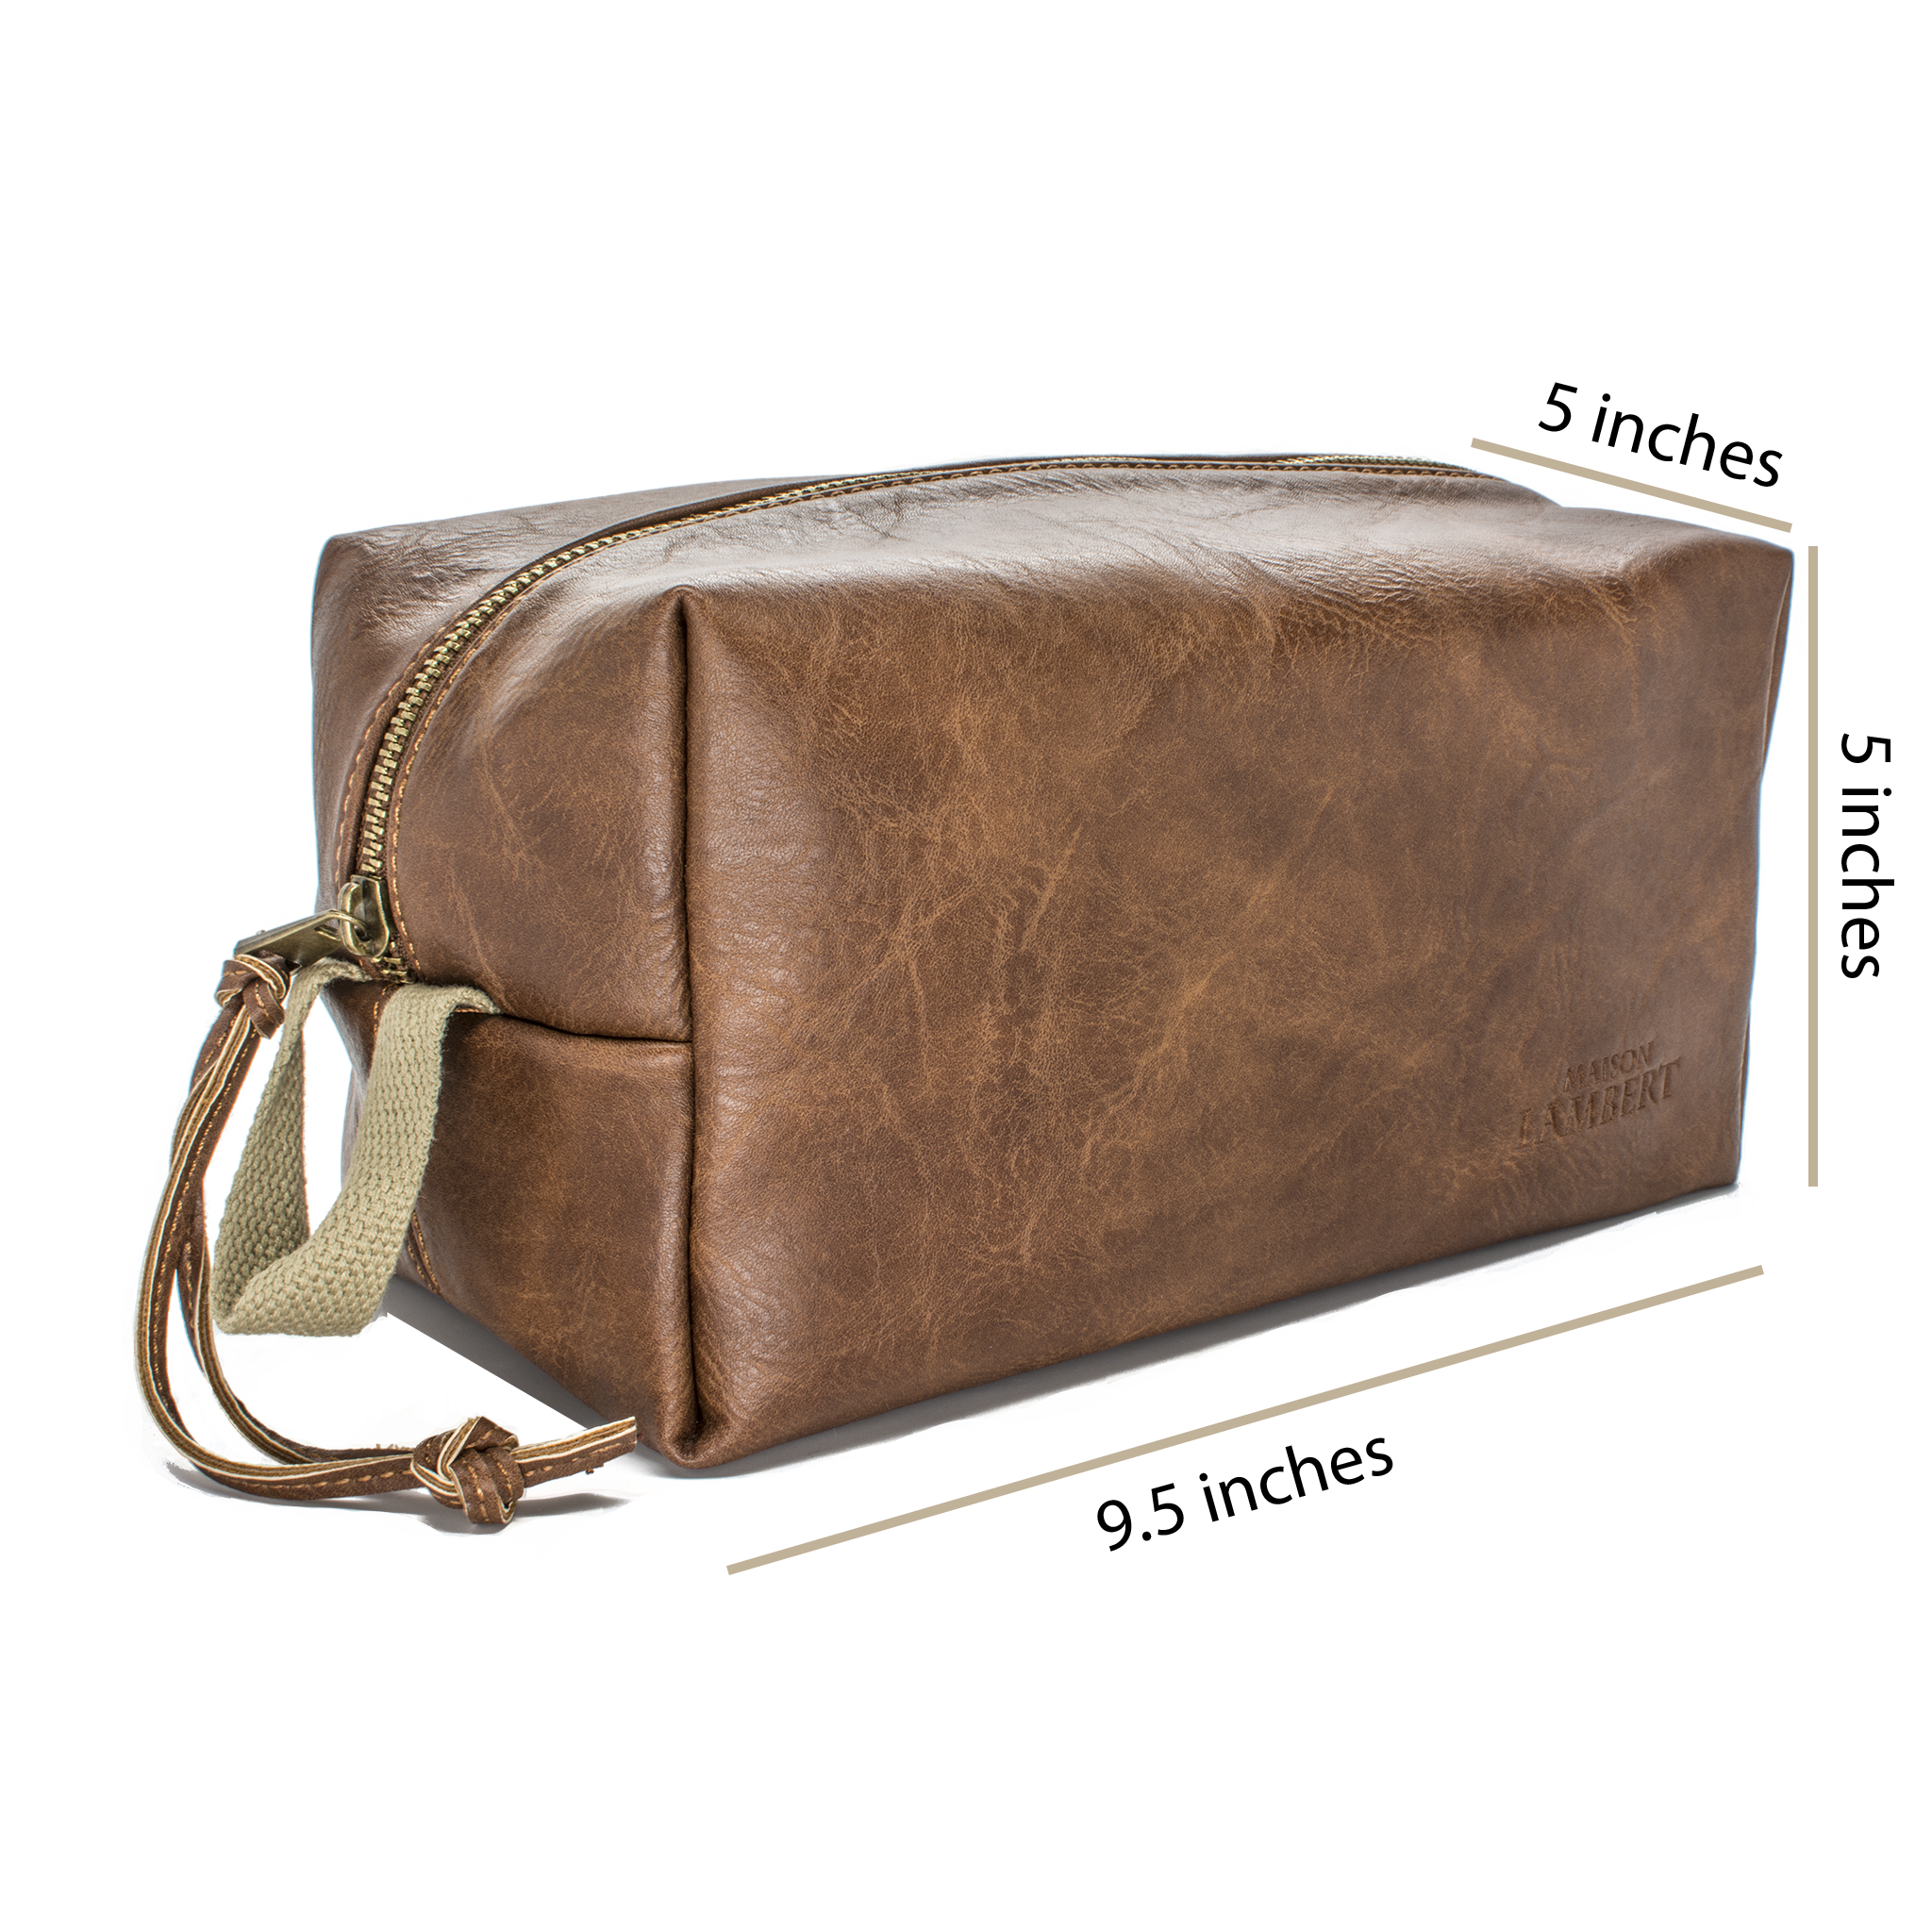 Men Toiletry Bag - Maison Lambert PU Leather Toiletry Bag For Men Vegan Toiletry Bag